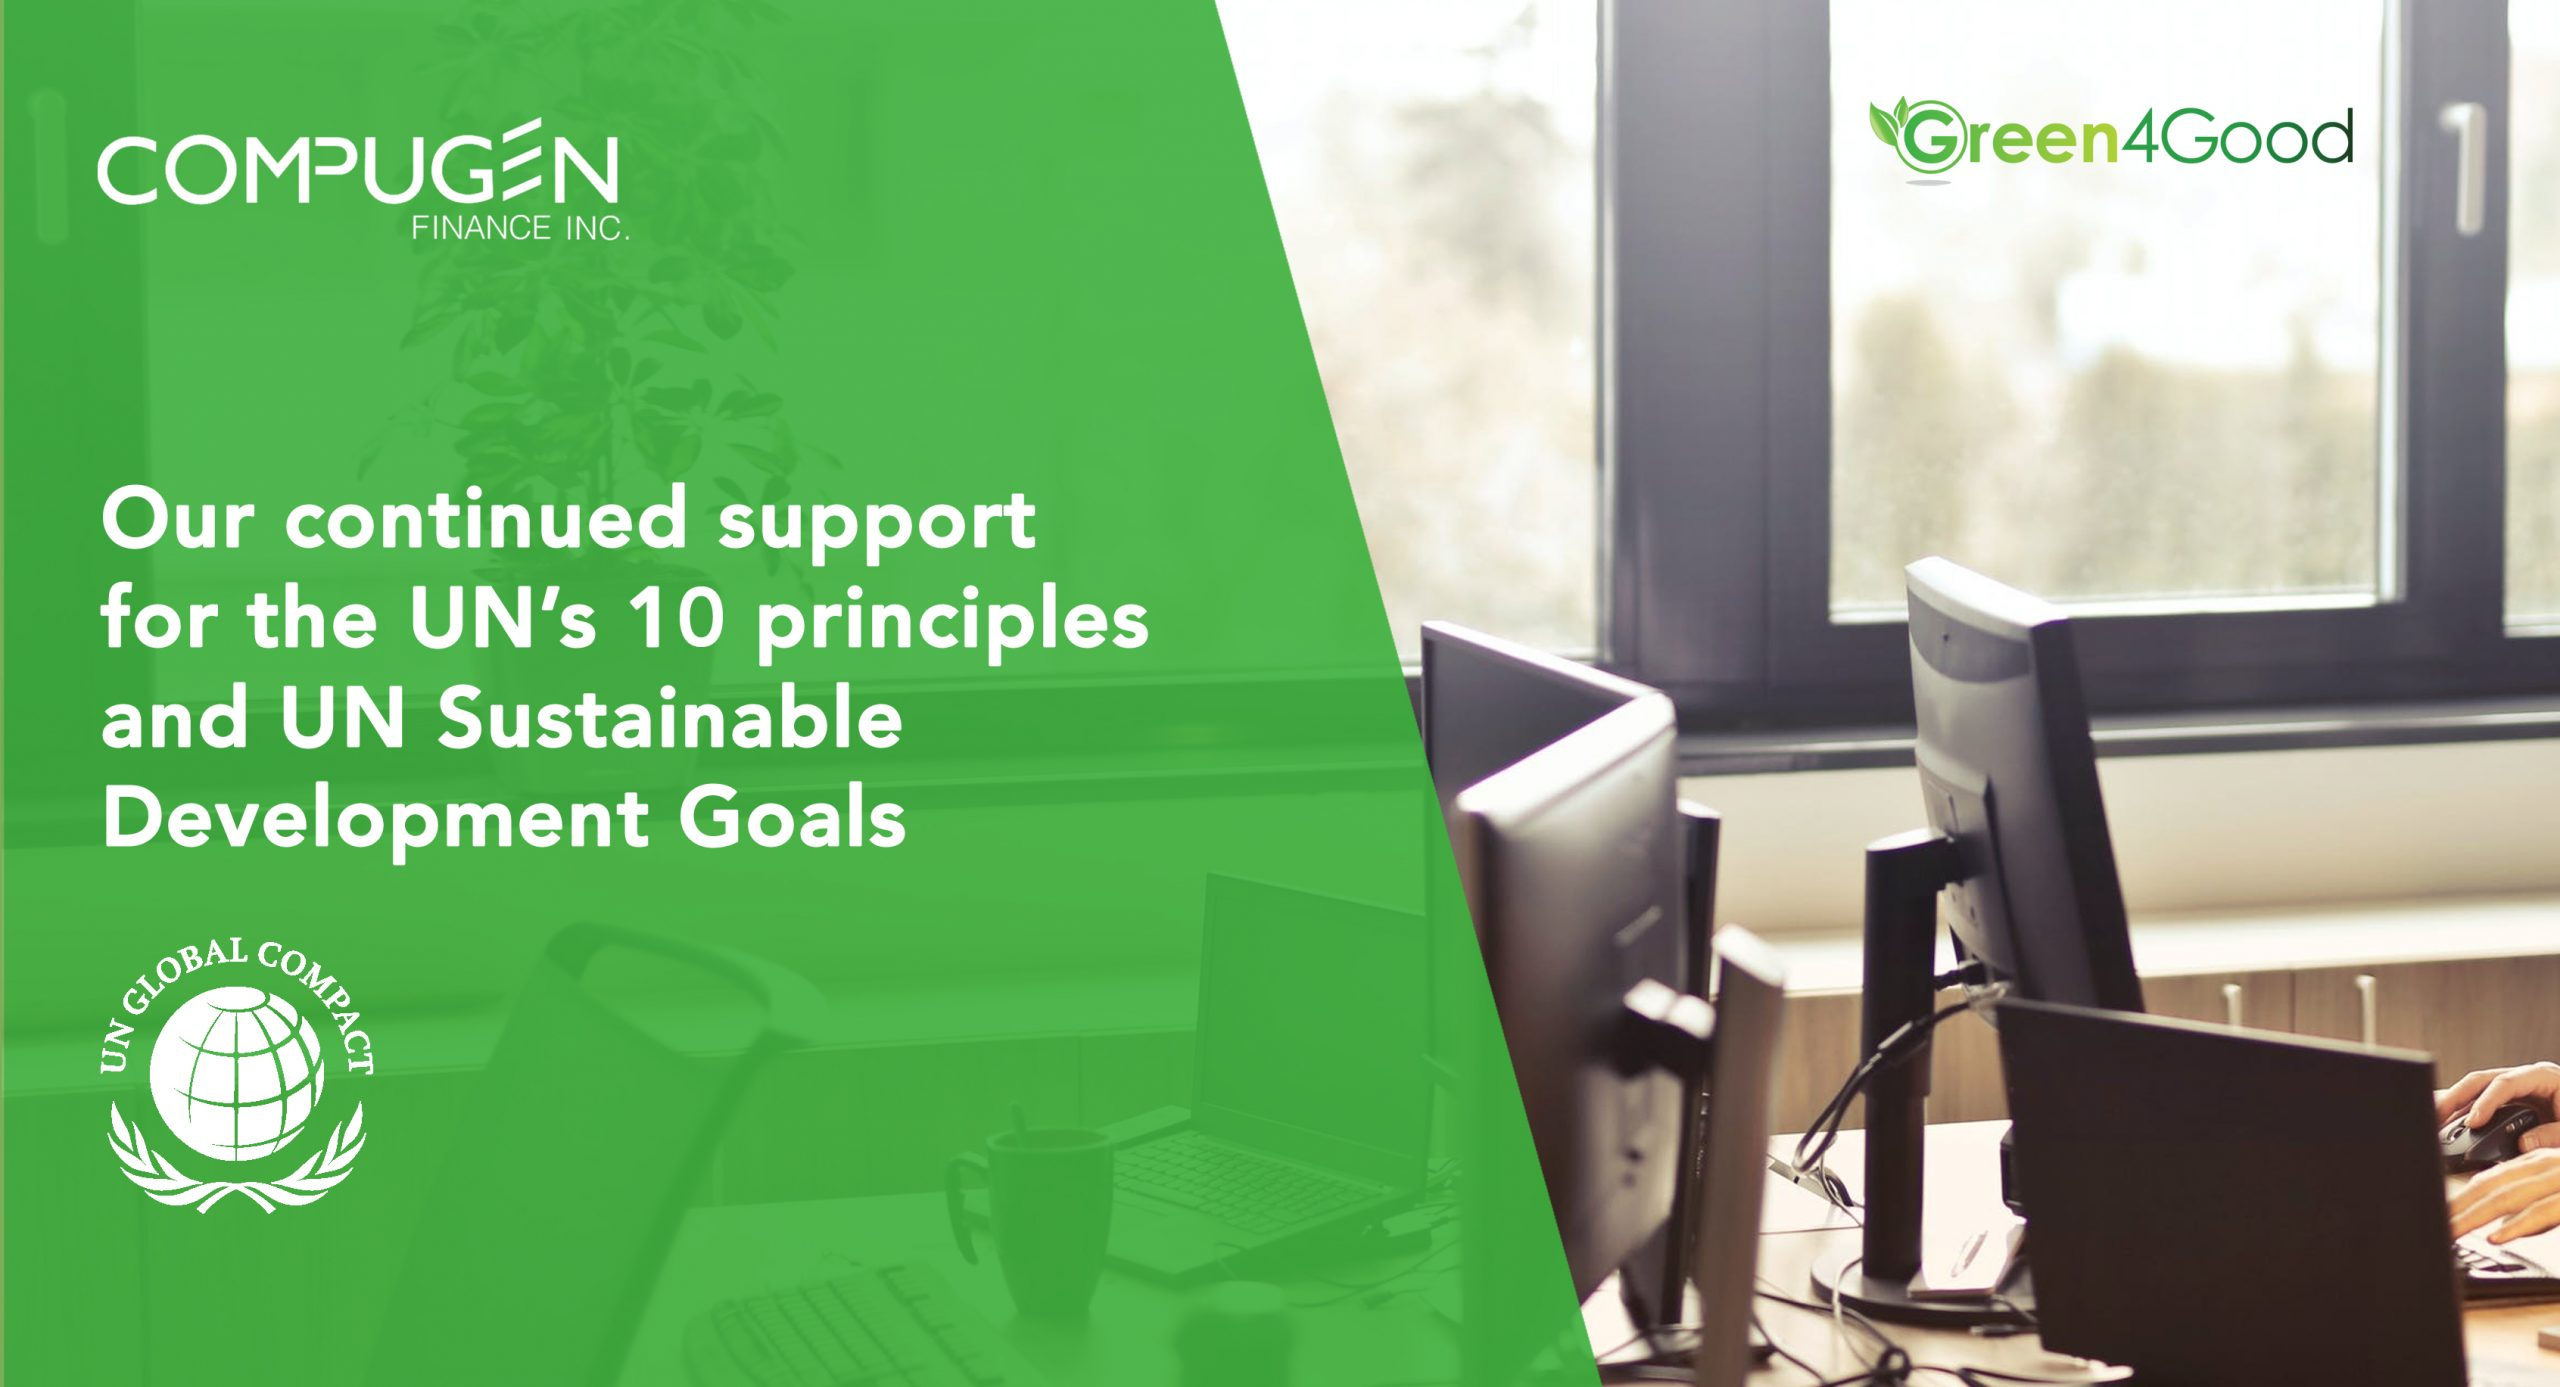 Compugen Finance Inc. is continuing our commitment to the United Nations Sustainable Development Goals.